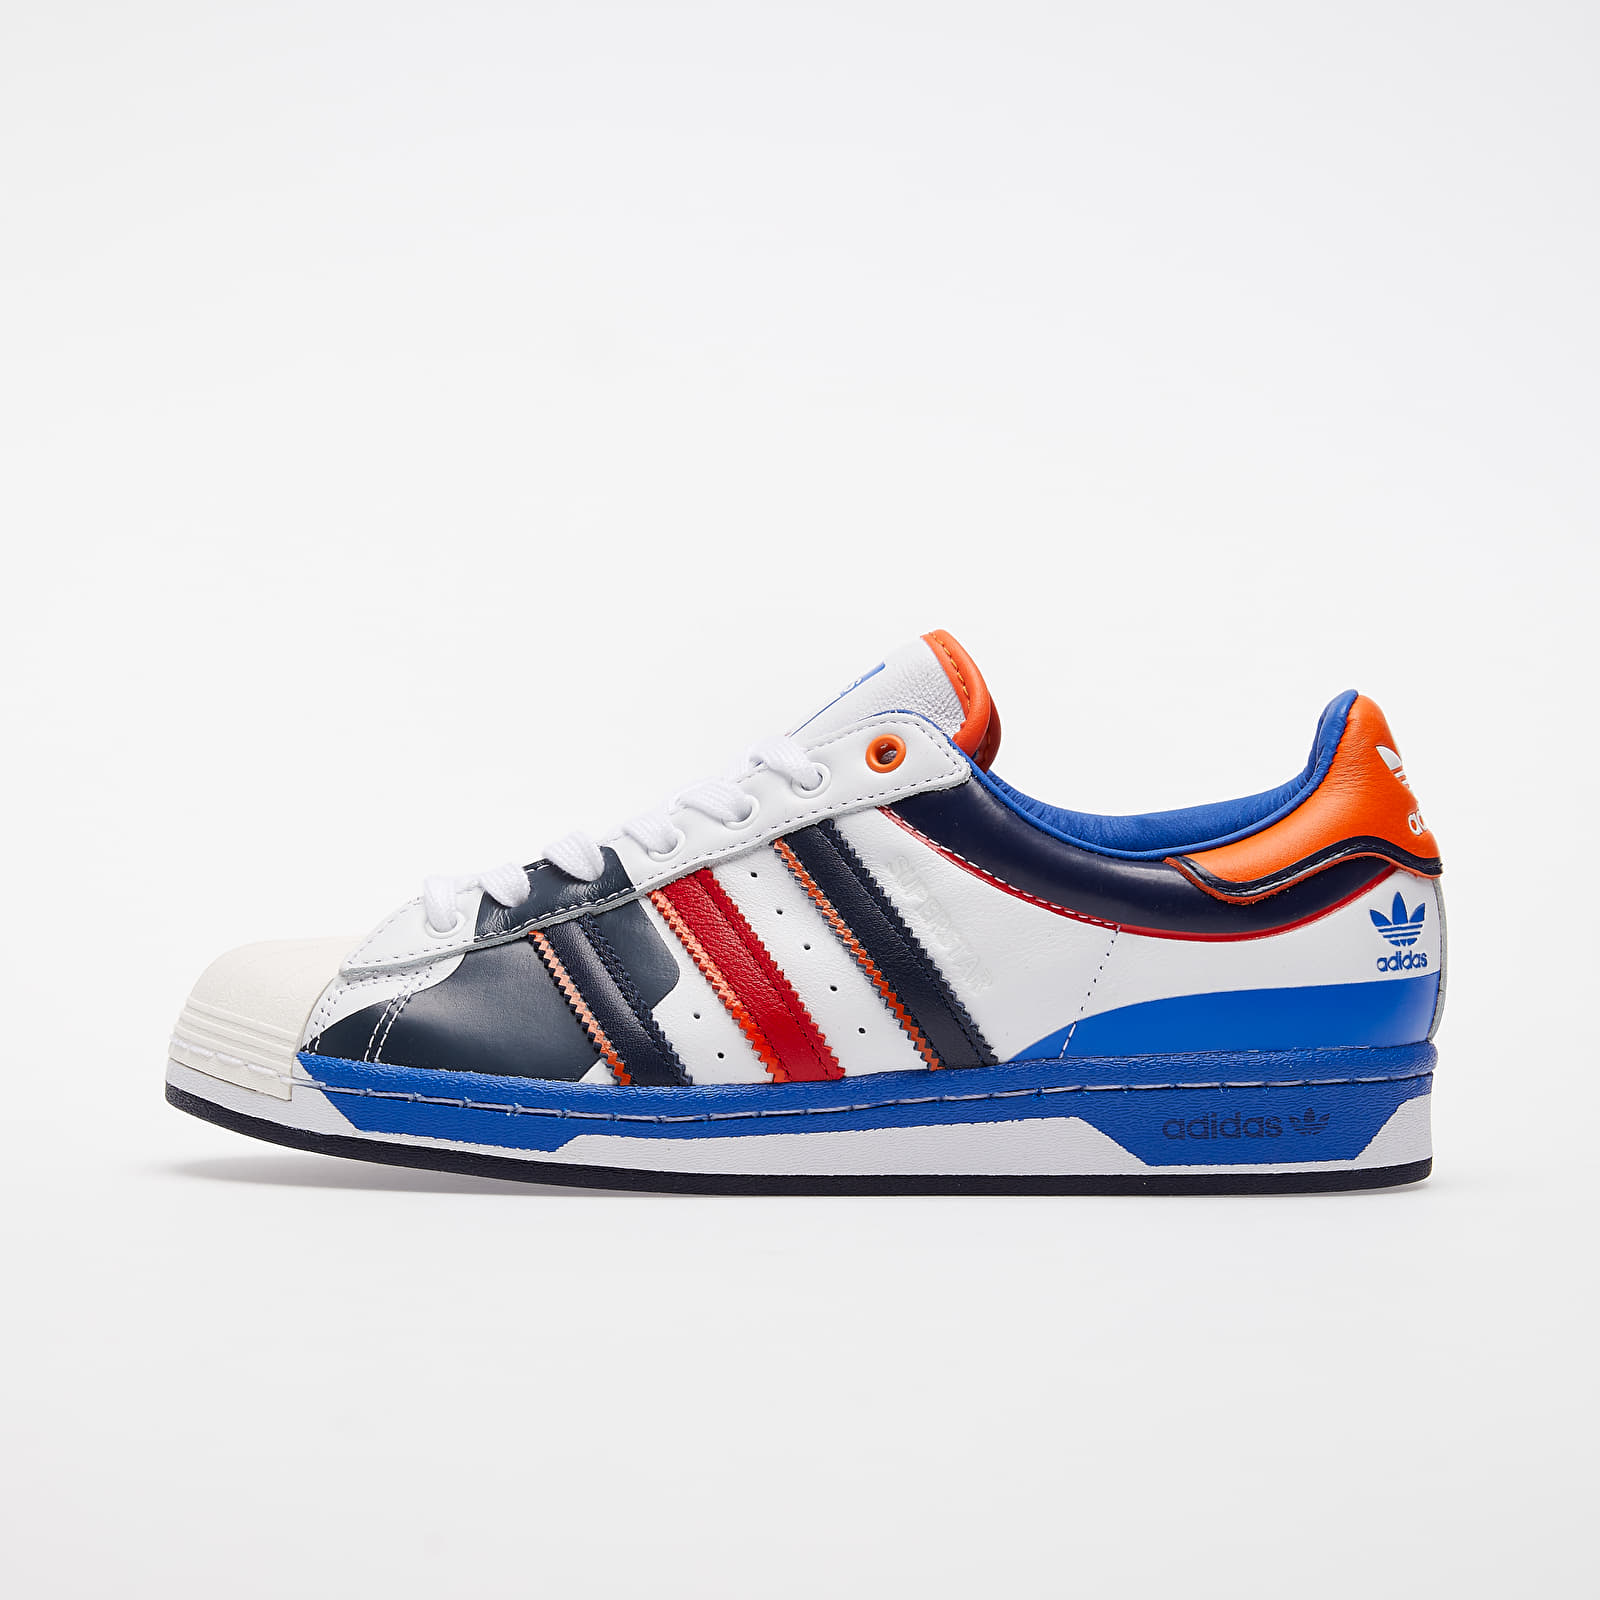 Men's shoes adidas Superstar Ftwr White/ Blue/ Scarlet